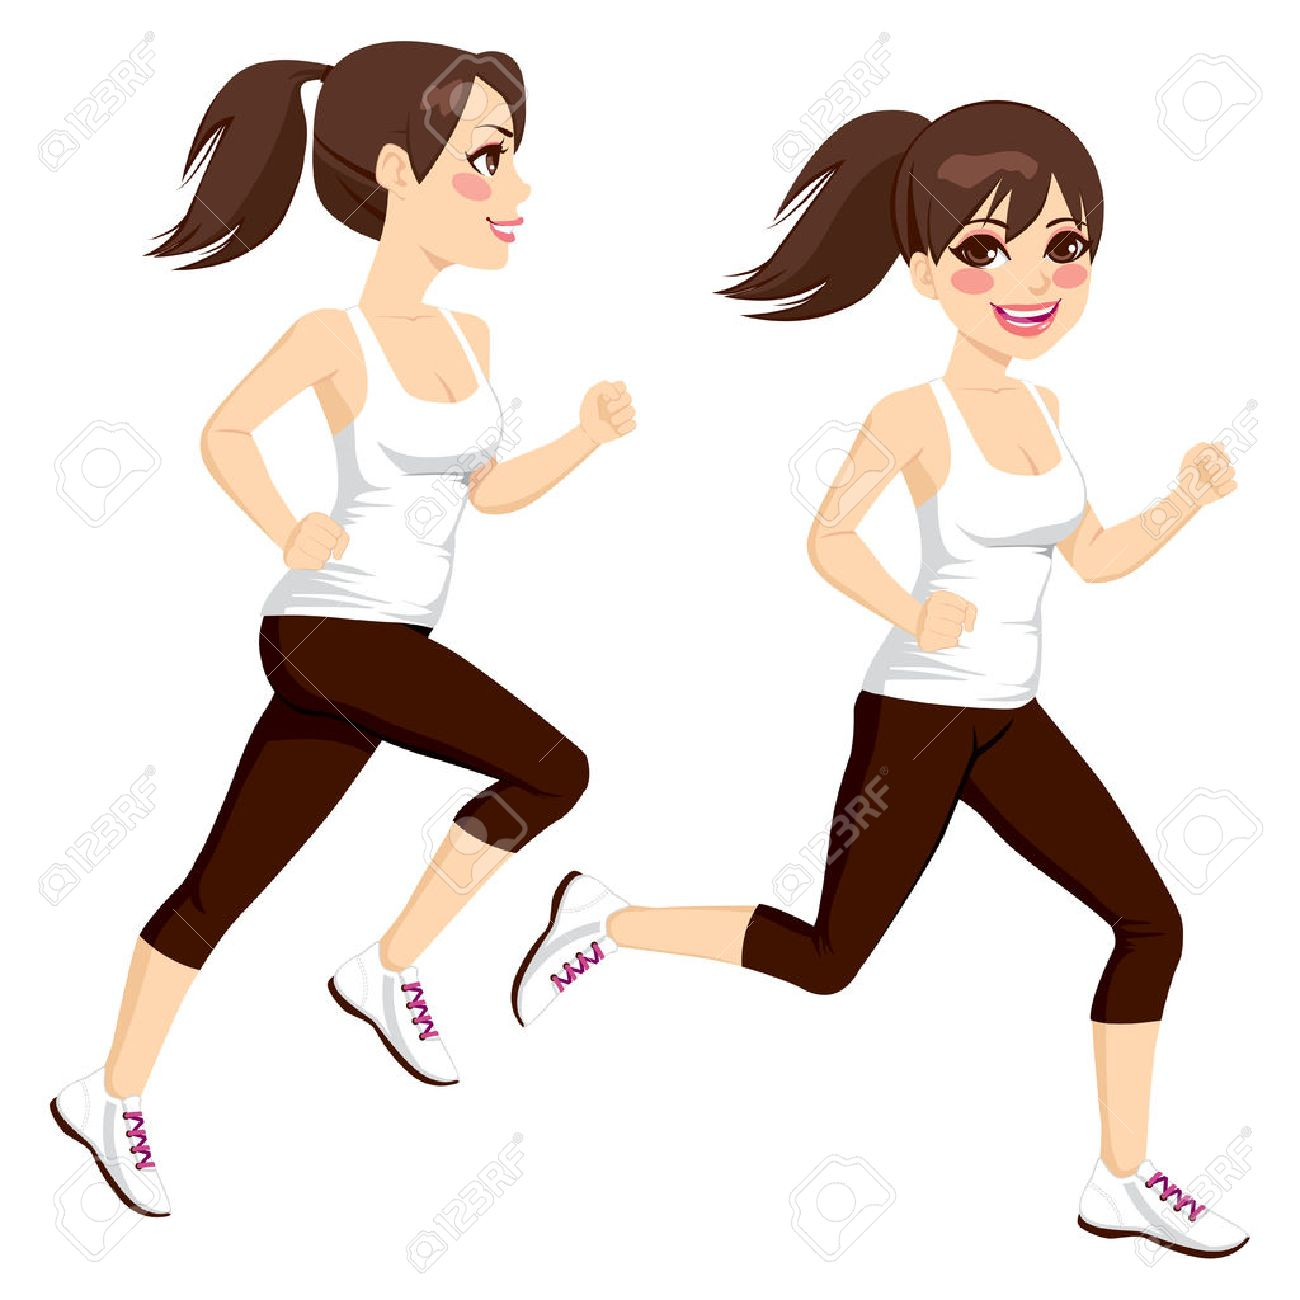 Image result for images for jogging and sitting on a bench cartoon